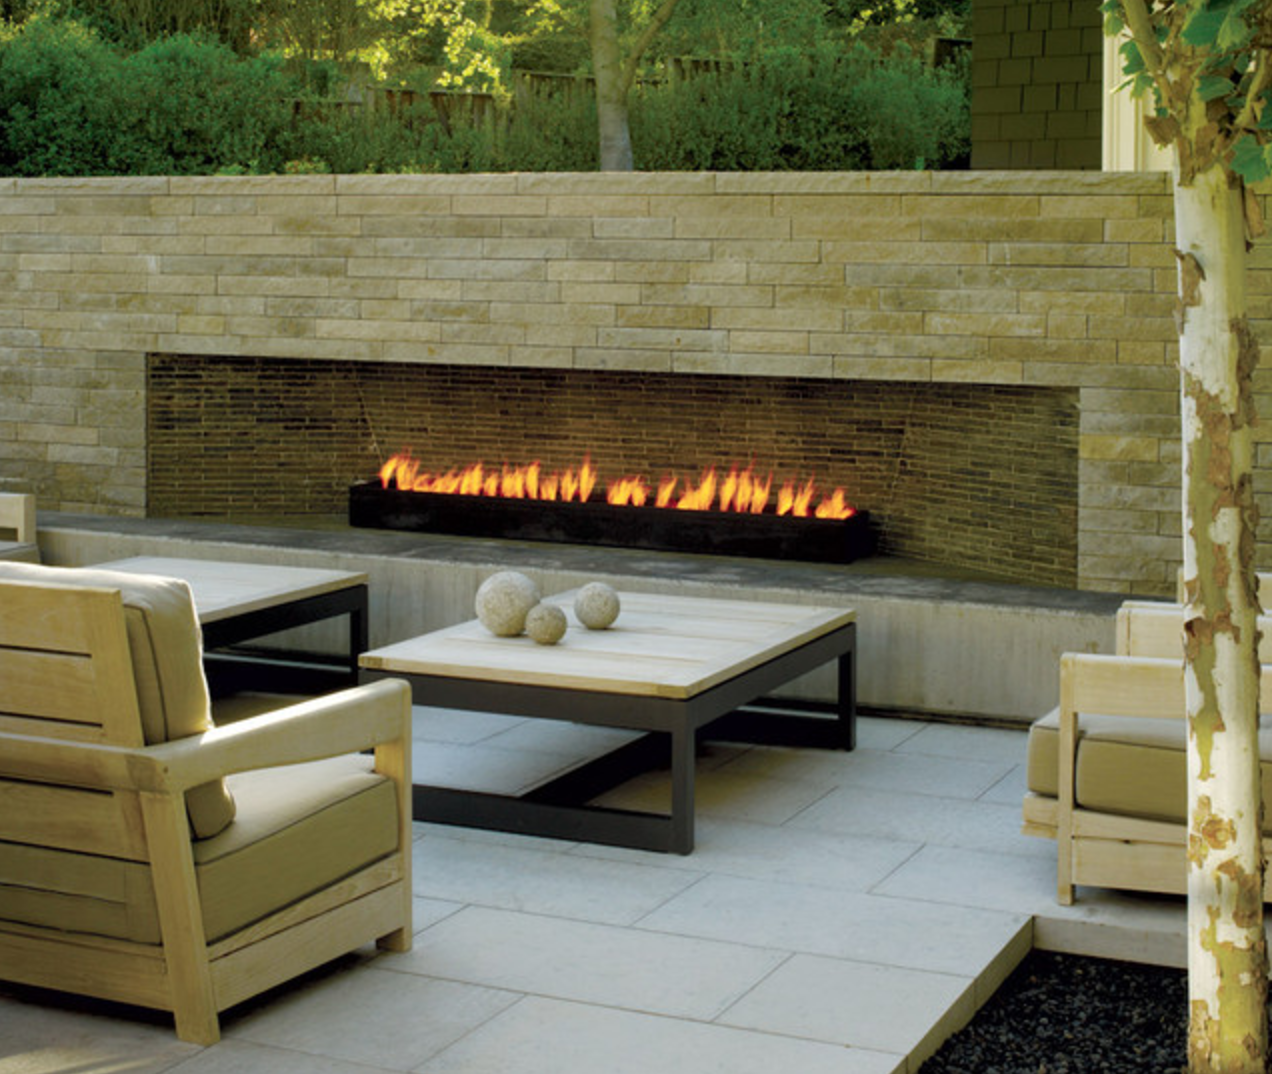 Make A Diy Fire Pit This Weekend With One Of These 61 Fire Pit